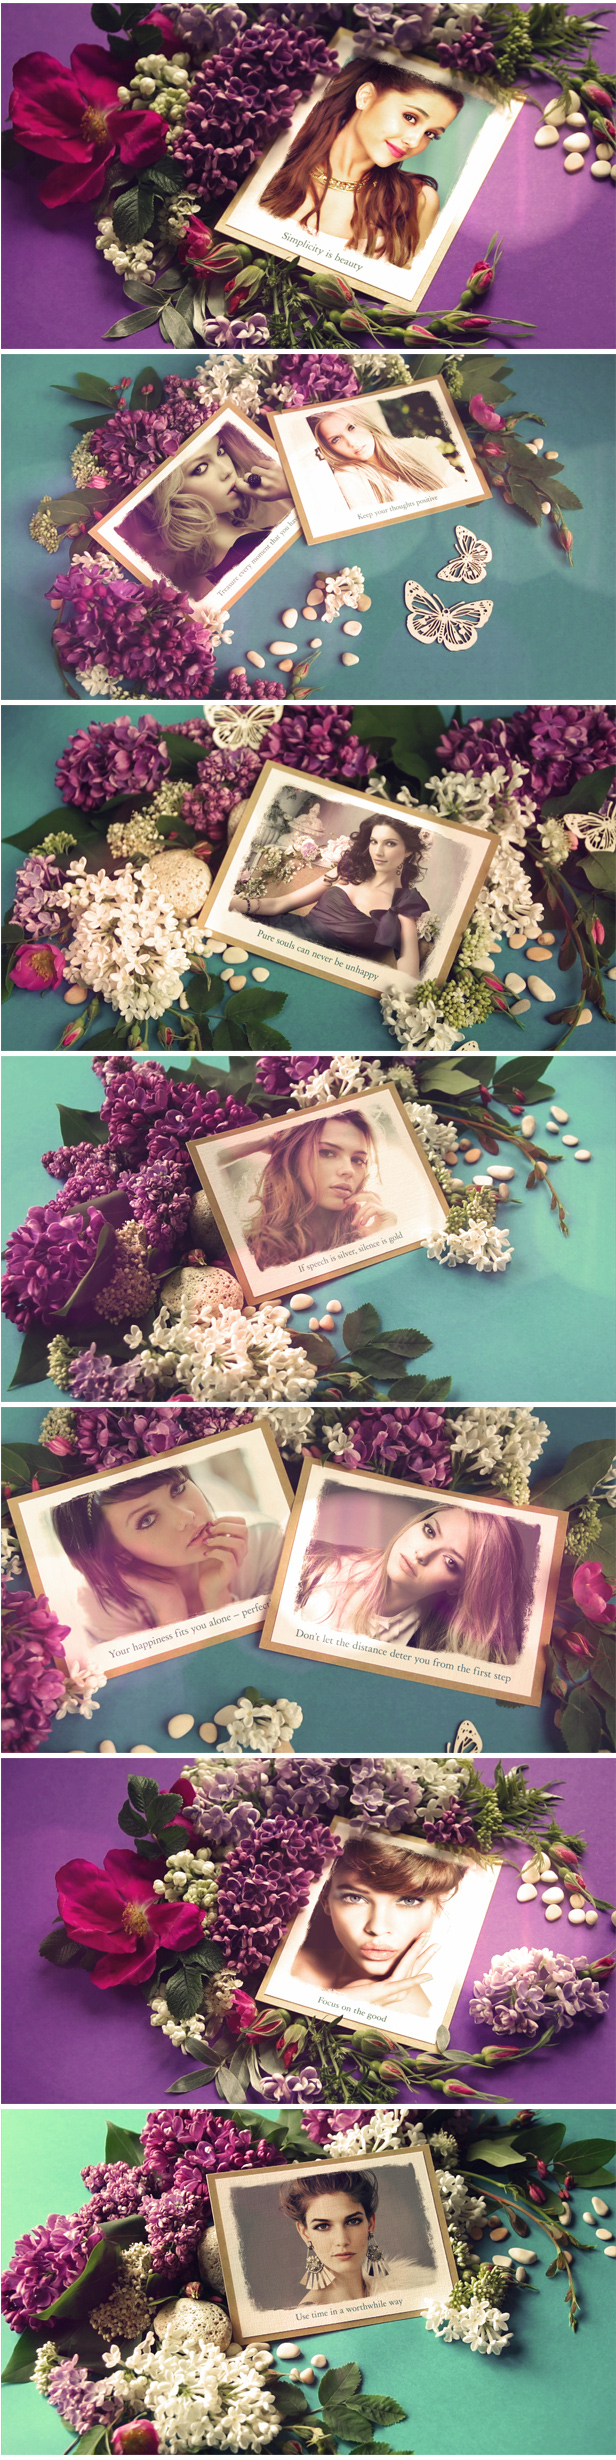 Romantic Lilac Slideshow After Effects Template for your love story, anniversary, wedding or memories